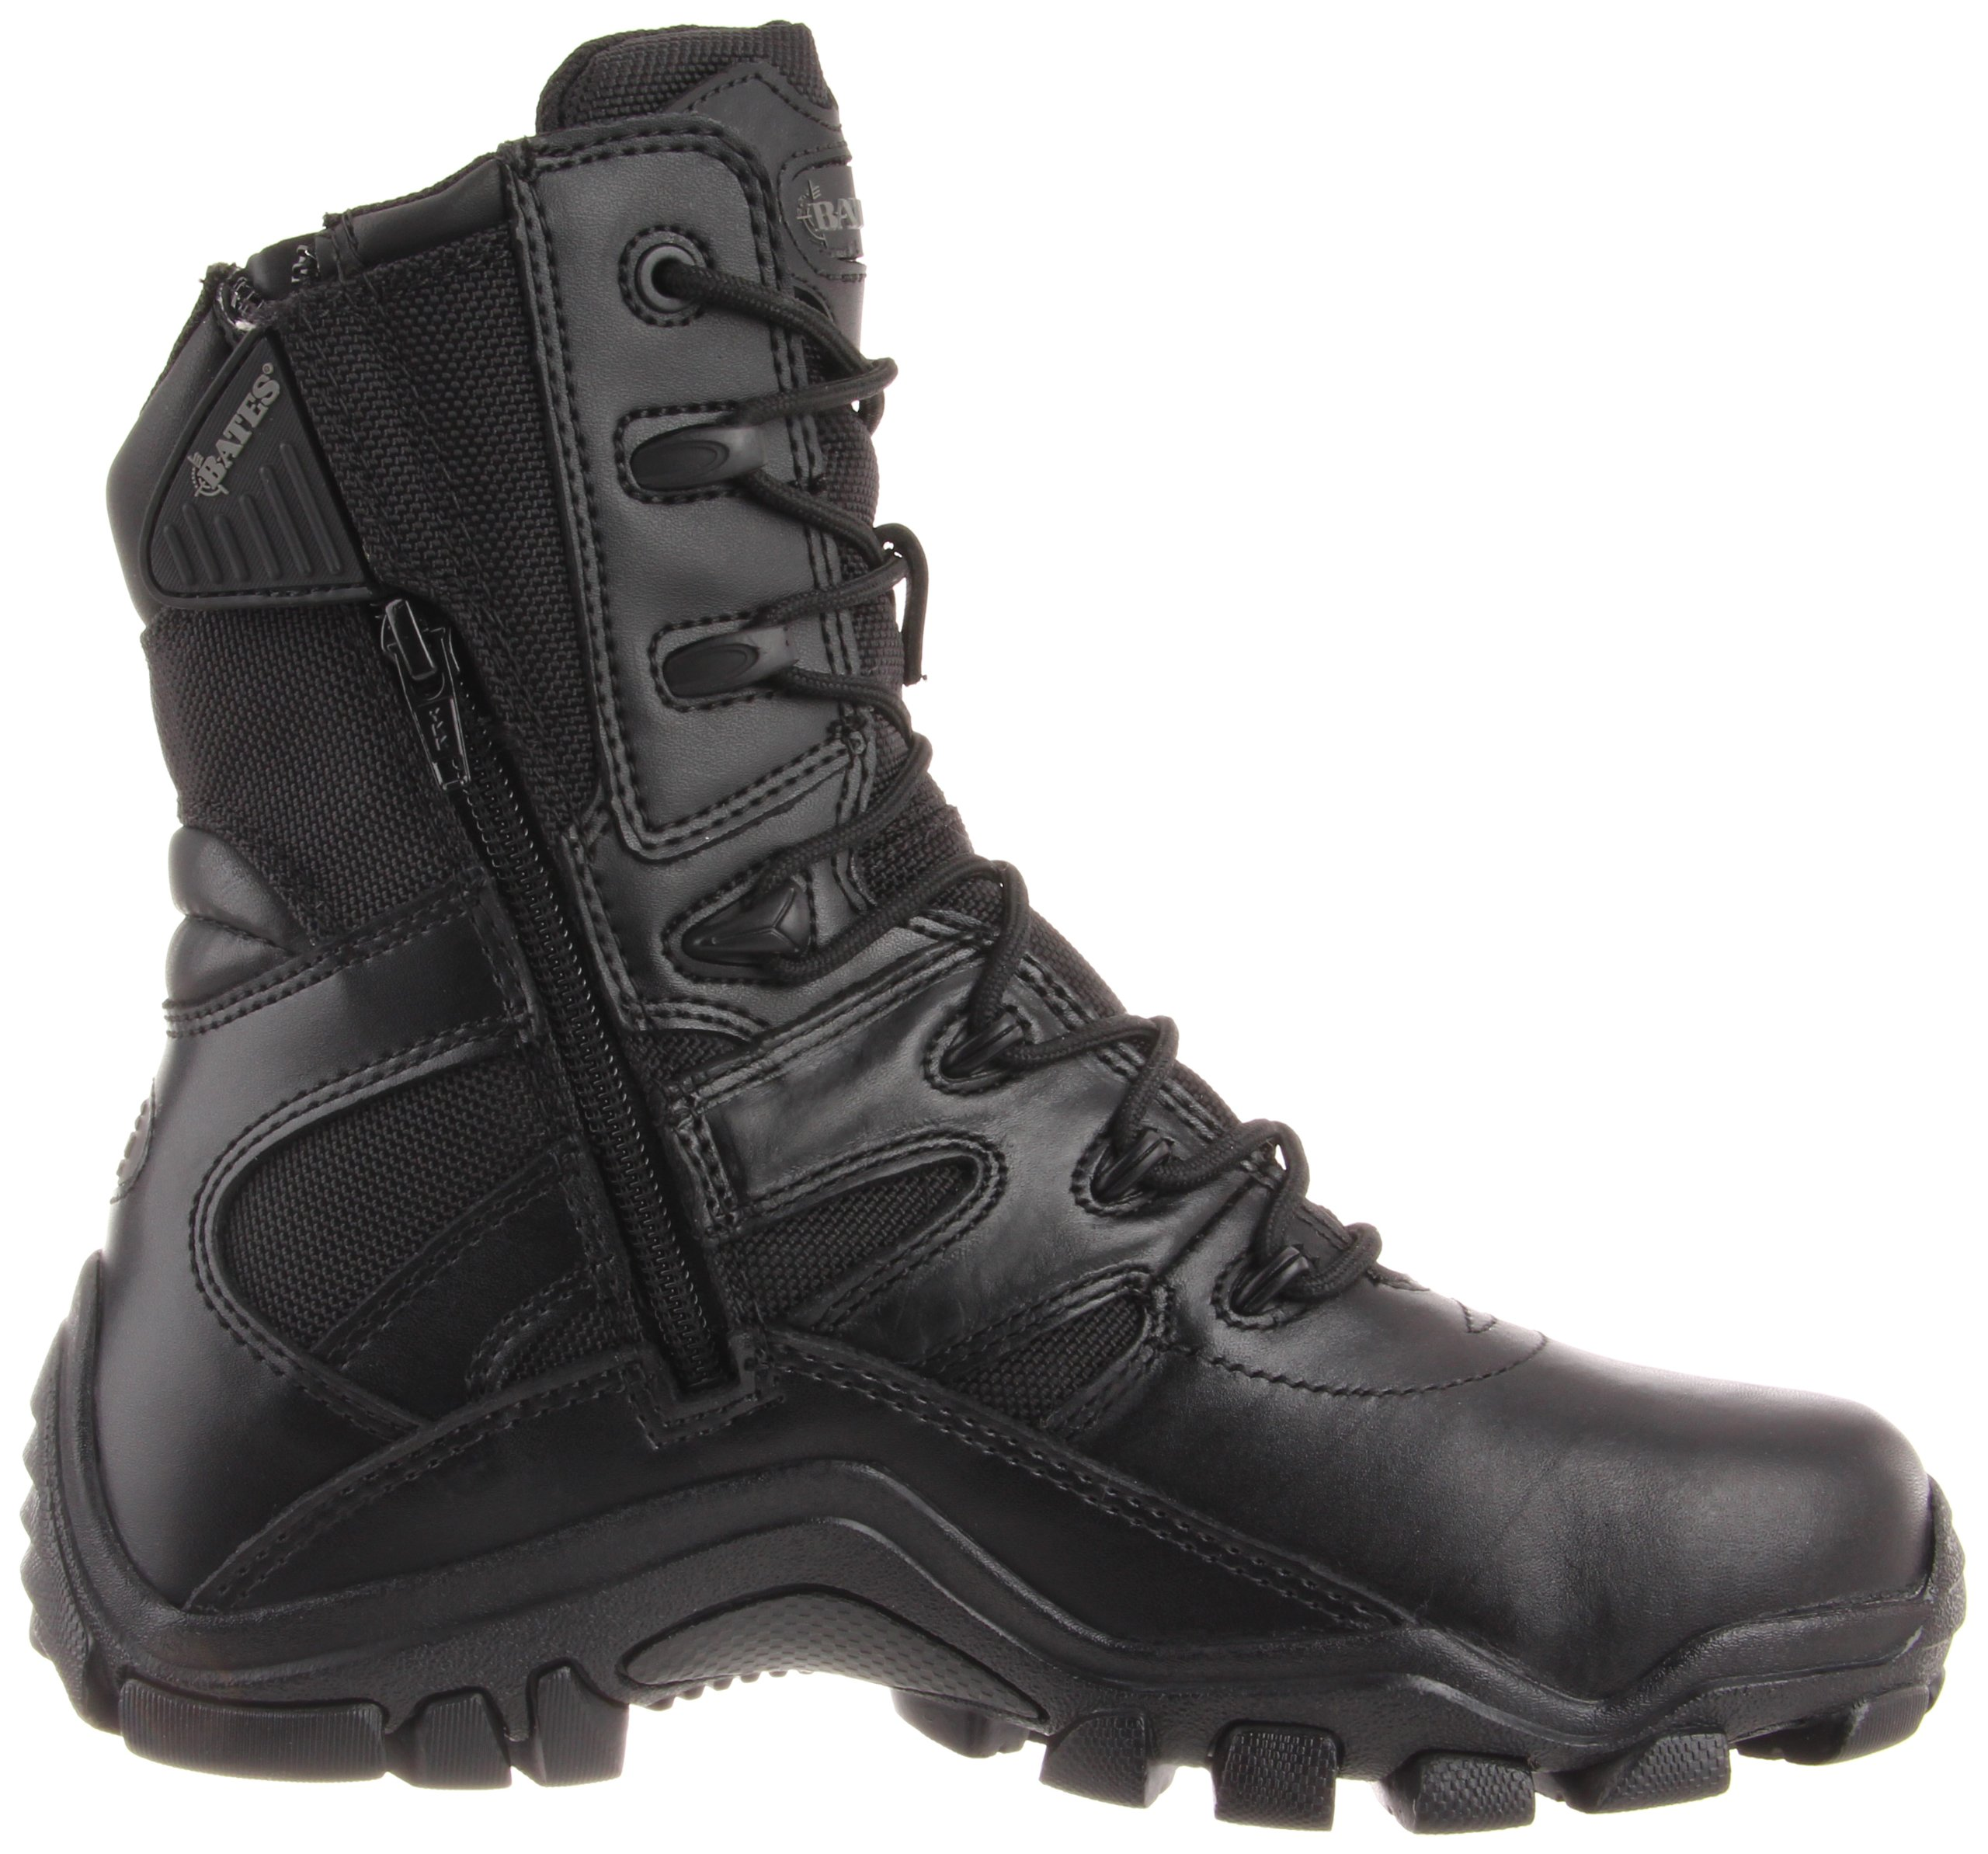 Bates Women's Delta 8 Inch Boot, Black, 8 M US by Bates (Image #6)